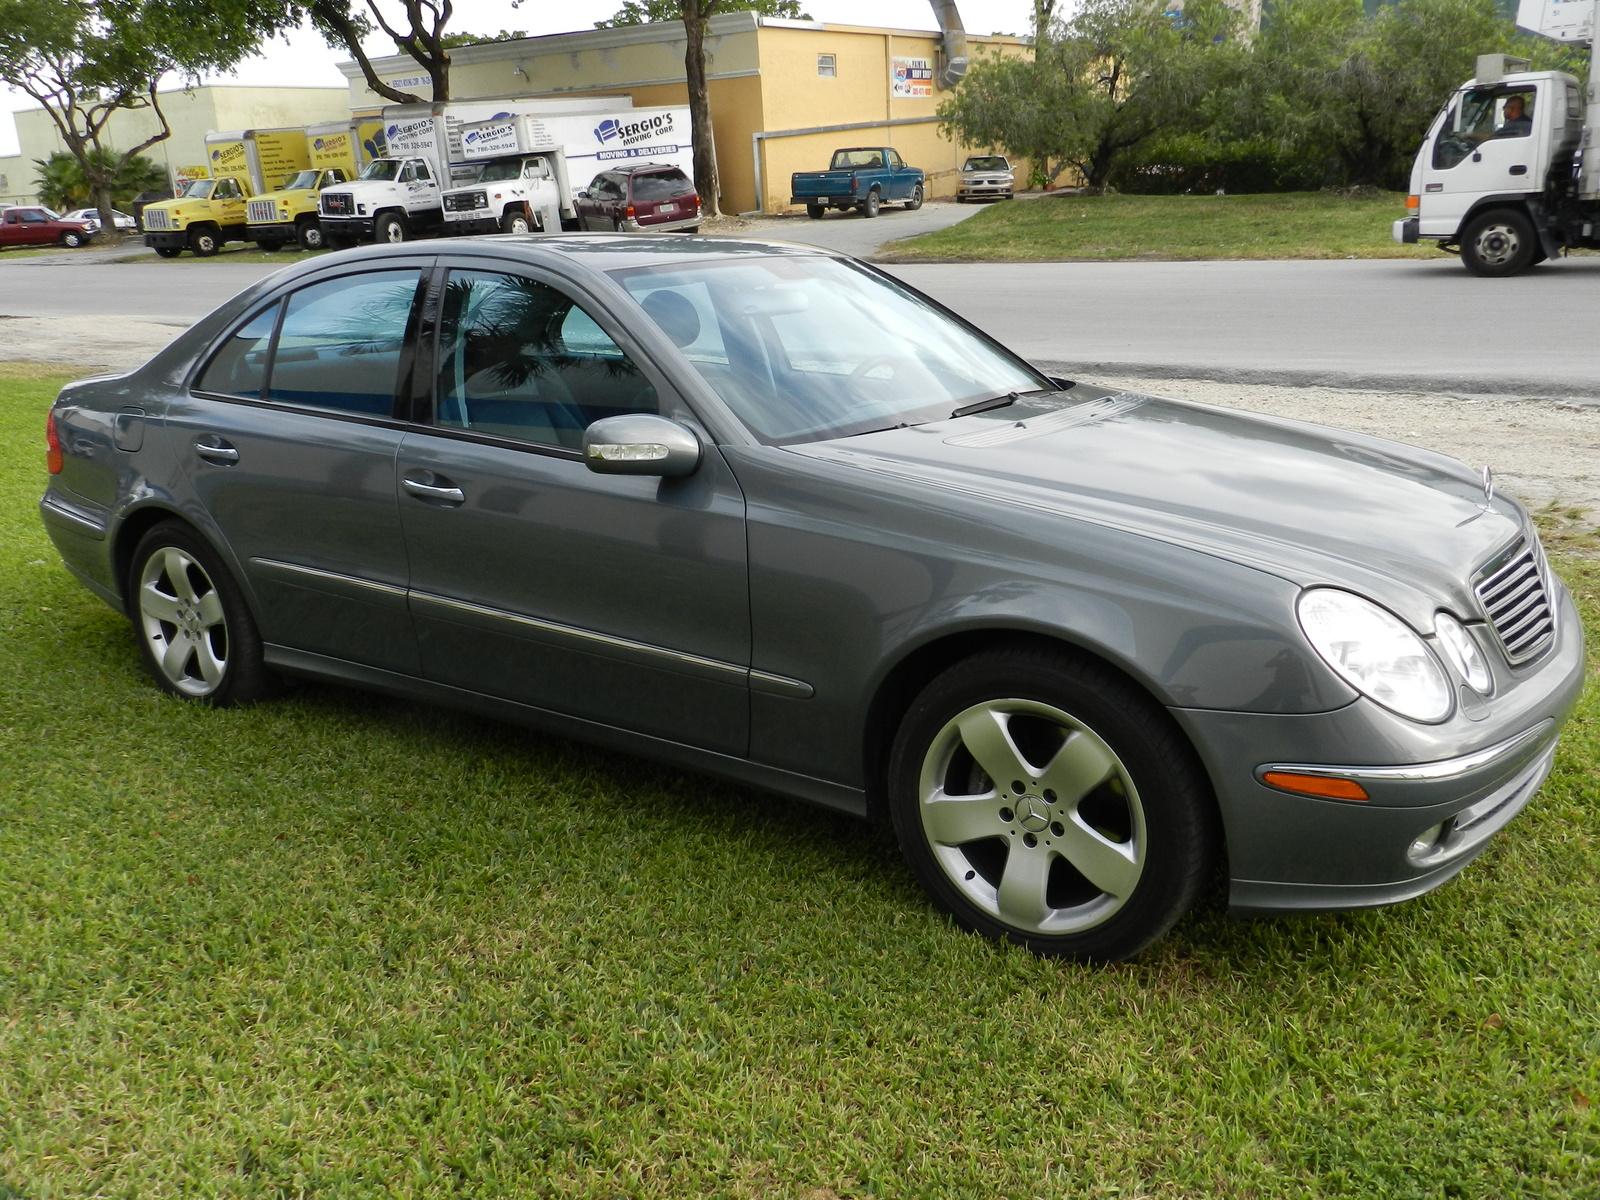 2004 mercedes benz e class other pictures cargurus for Mercedes benz e class 2004